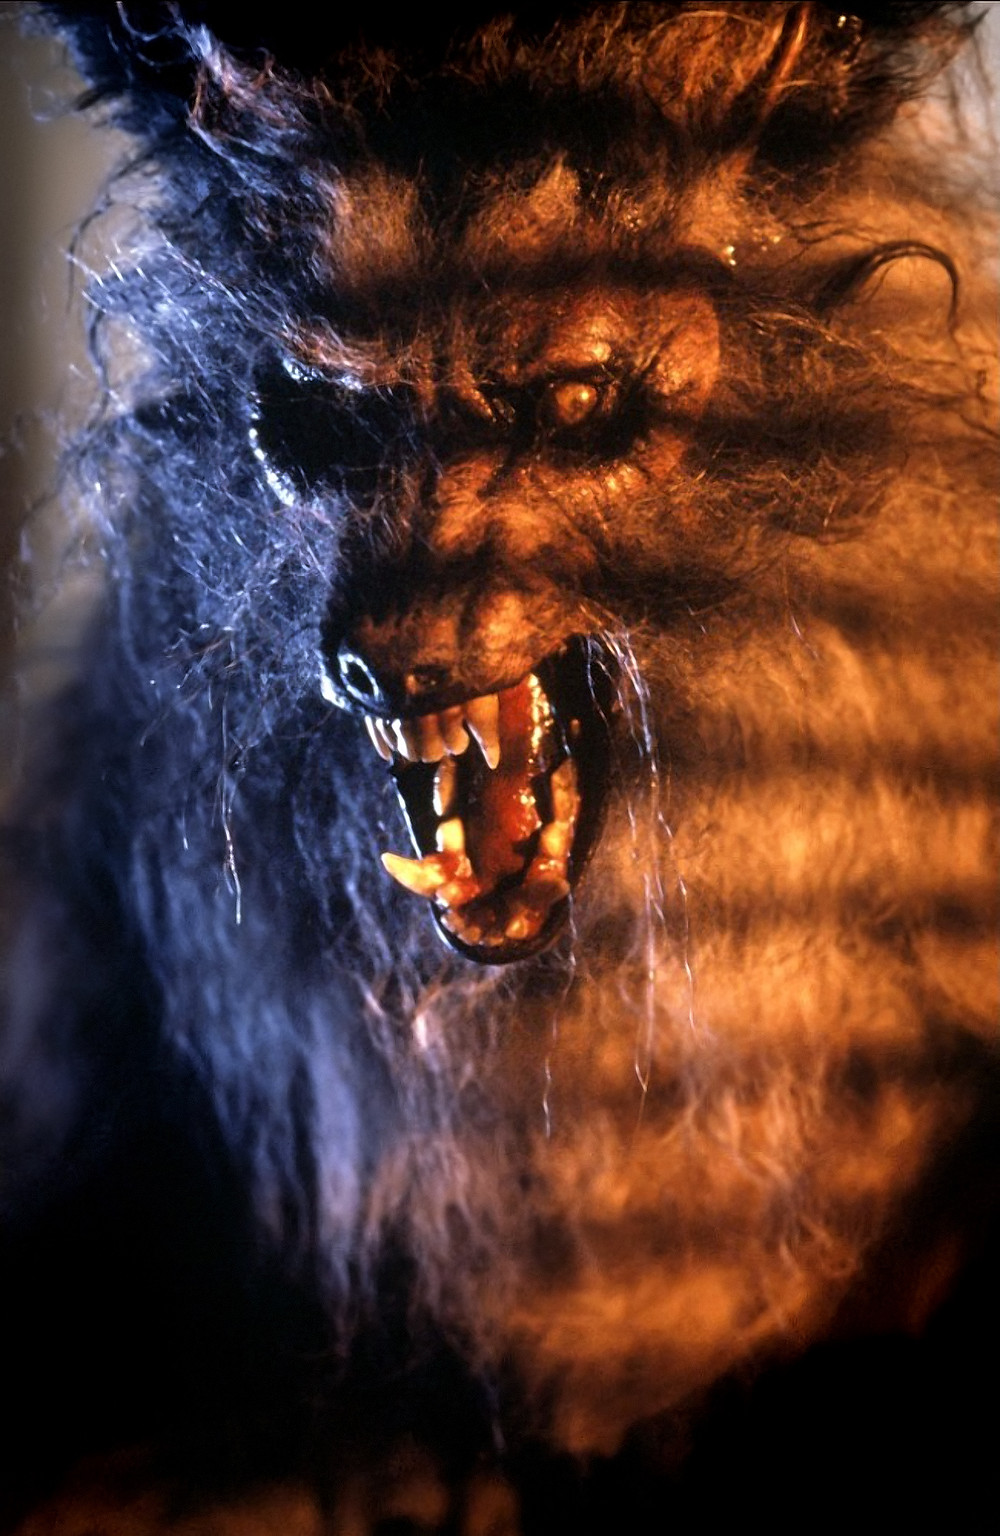 FILE PHOTO: A Still Image of THE HOWLING (1981). ©Embassy Pictures